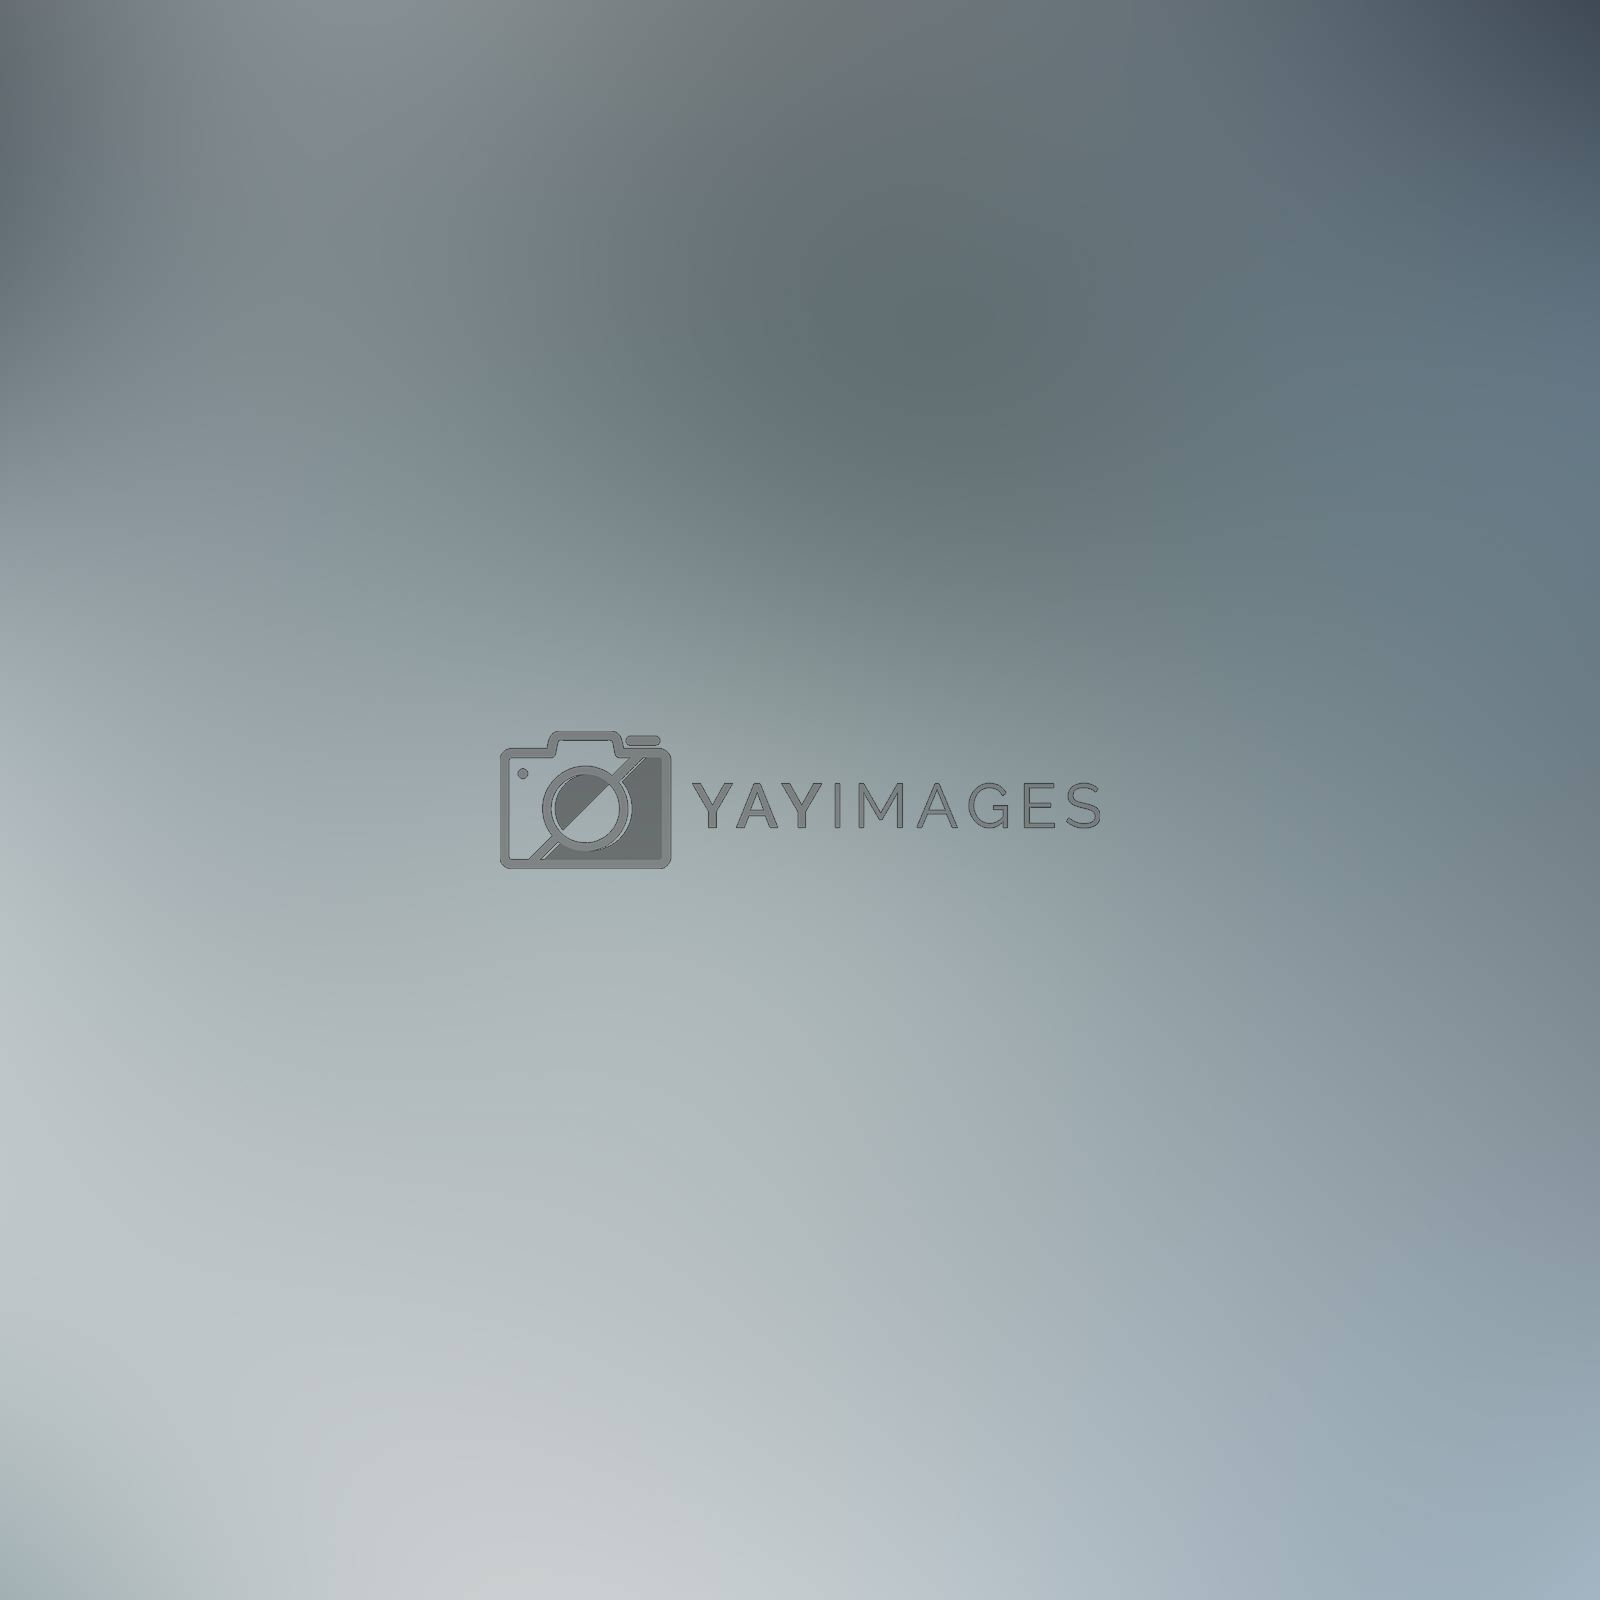 Silver grey tone. Abstract background wallpaper use for presentation.